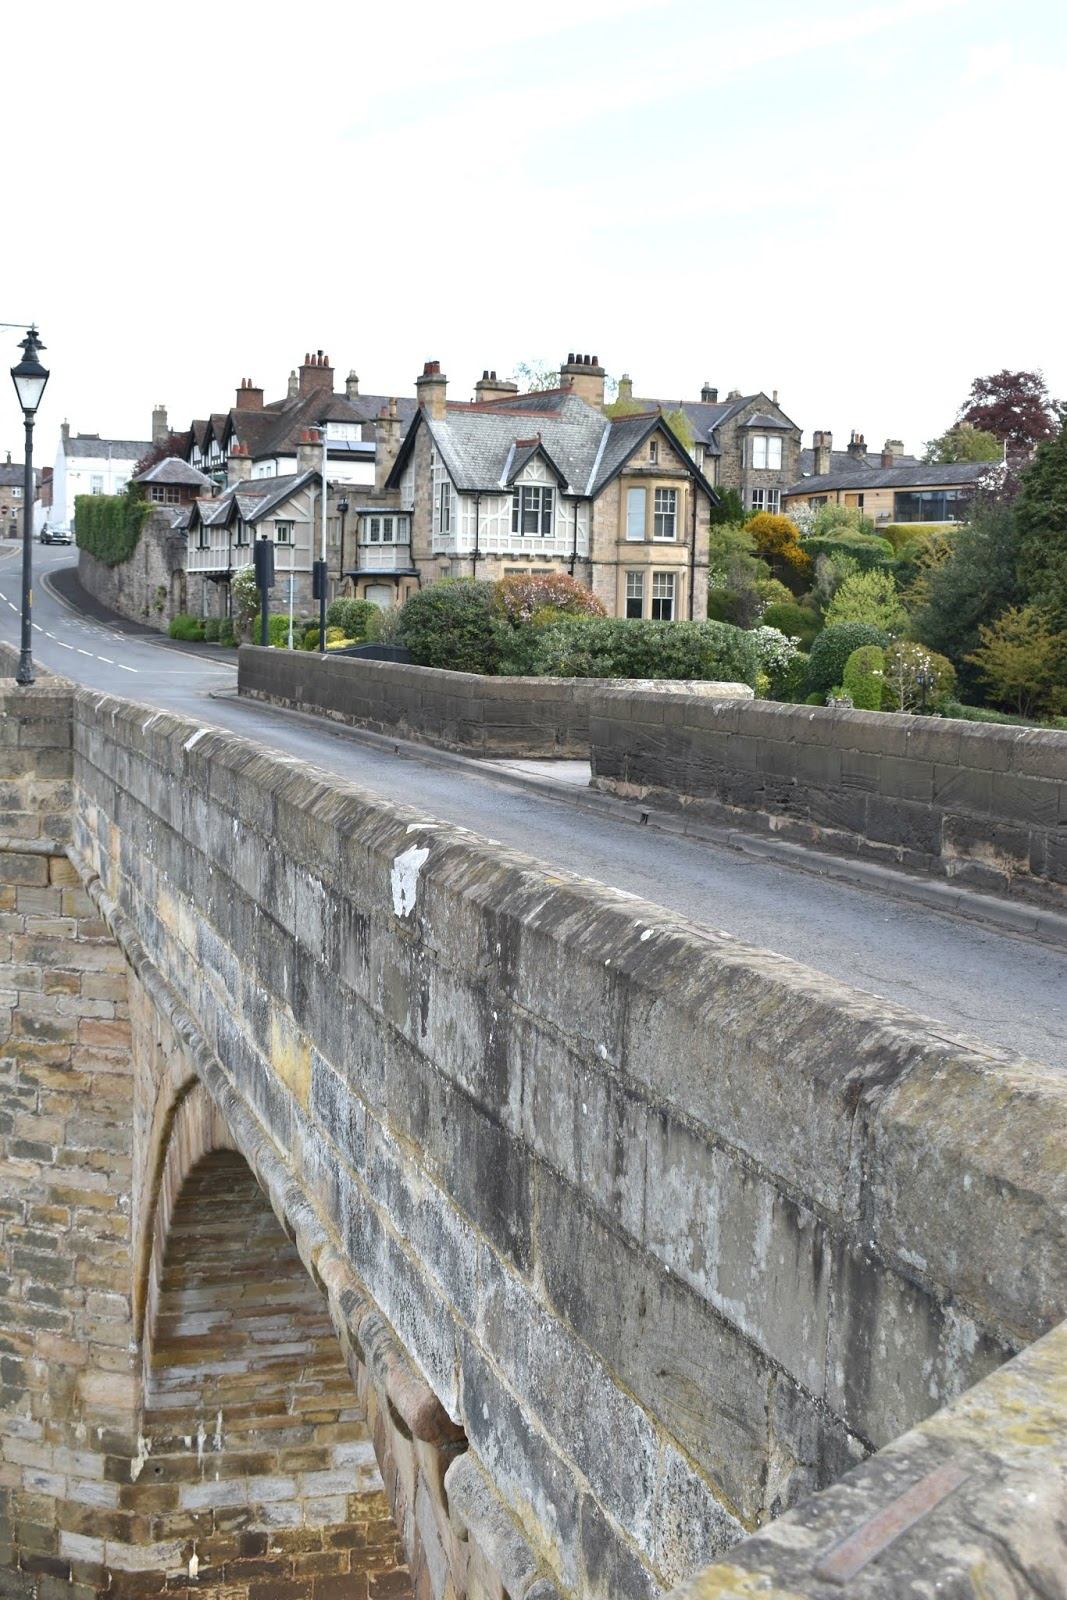 Day Tripping to Corbridge, Northumberland